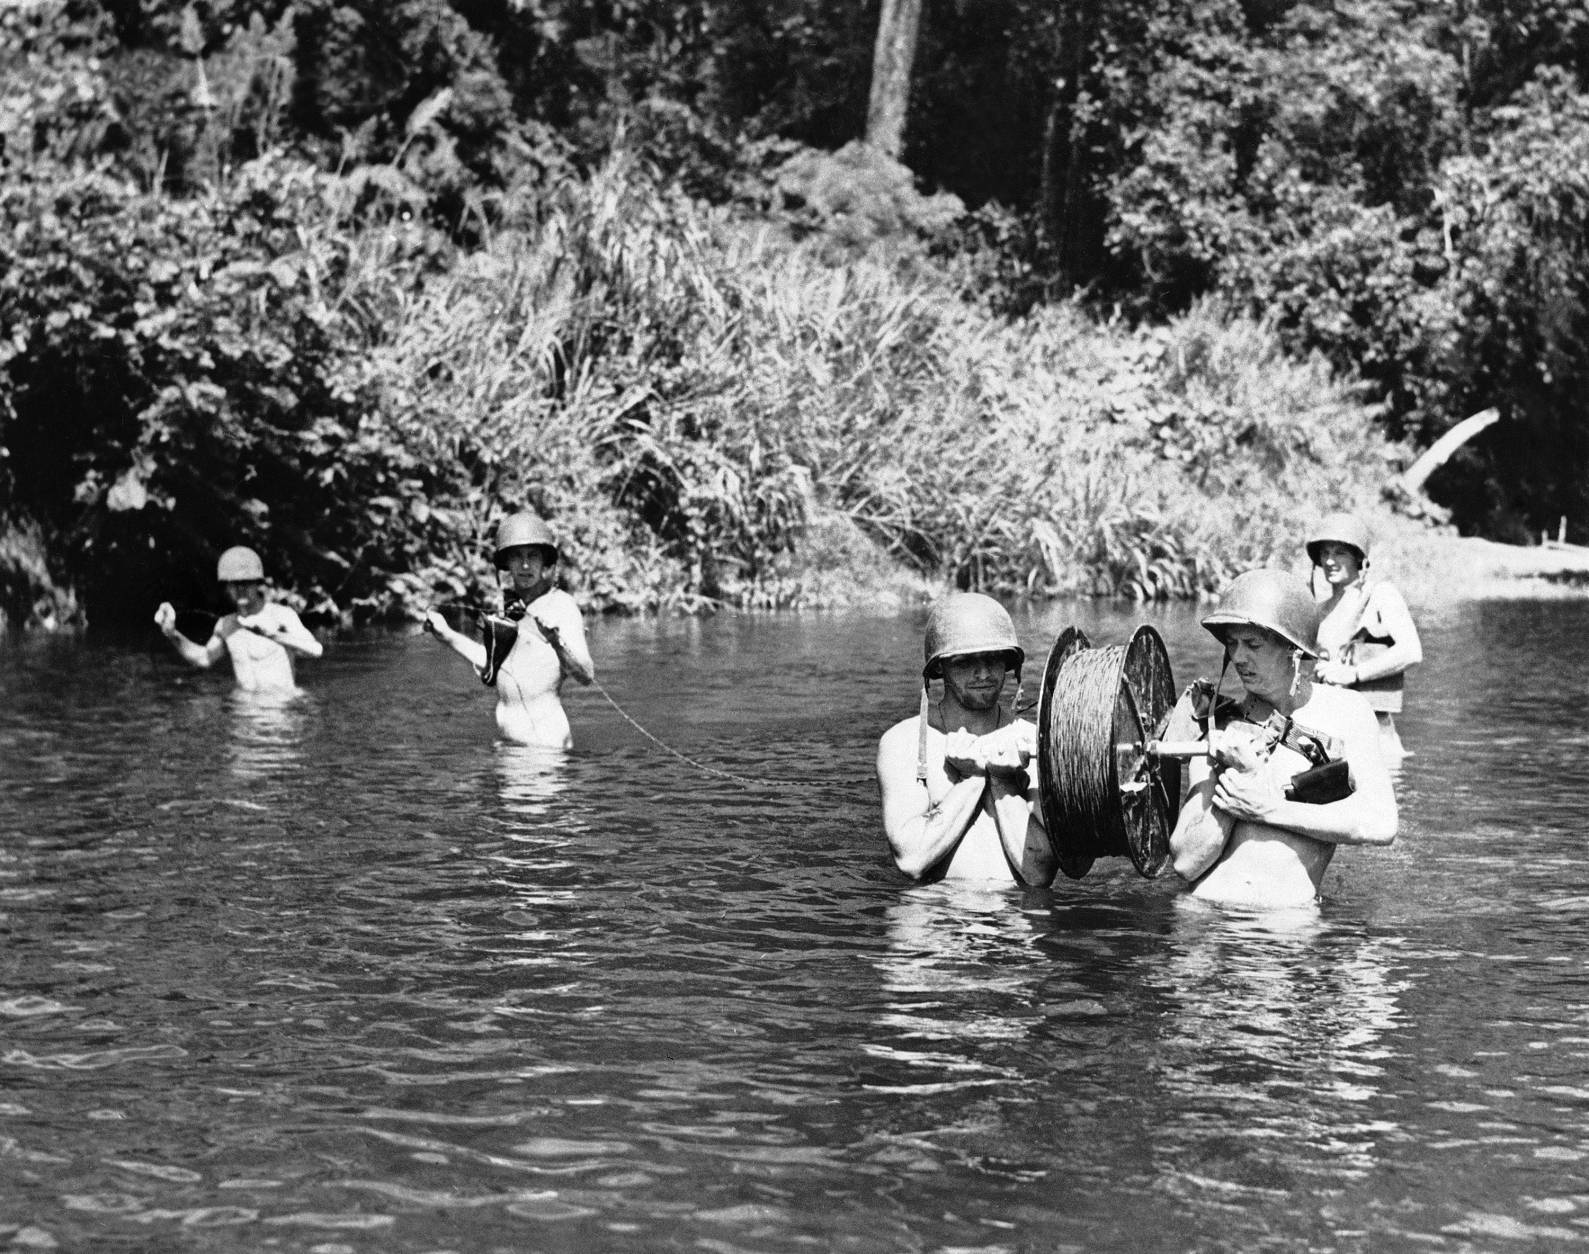 Crew of U.S. Marines fords a river on Guadalcanal, in the Solomon Islands, to lay a telephone wire on Nov. 12, 1942. They strip down to get the wire across the Longa River to provide speedy military communication. (AP Photo/Pool)